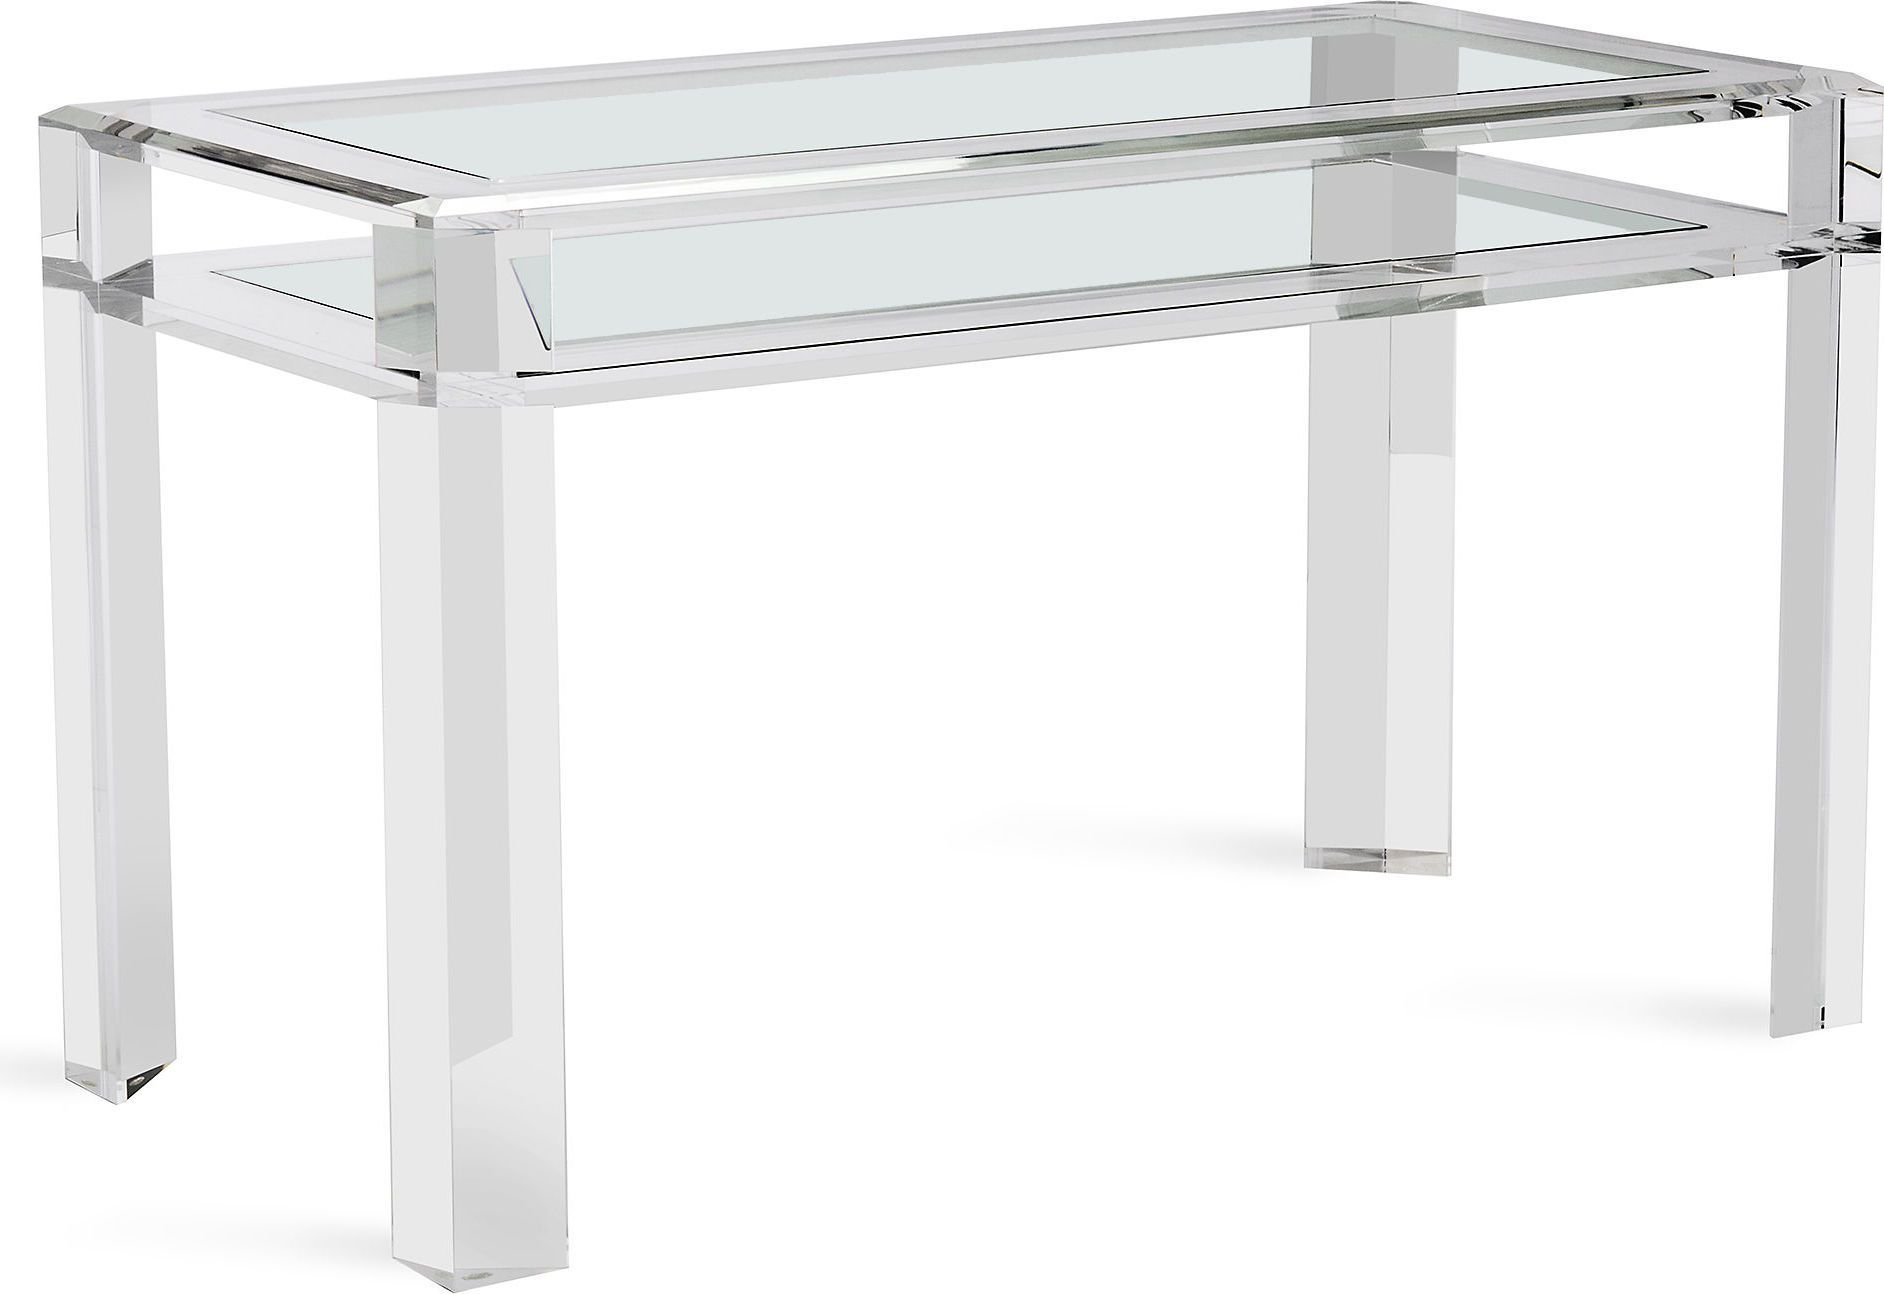 Handsome And Bold The Acrylic And Glass Surrey Desk Adds Terrific